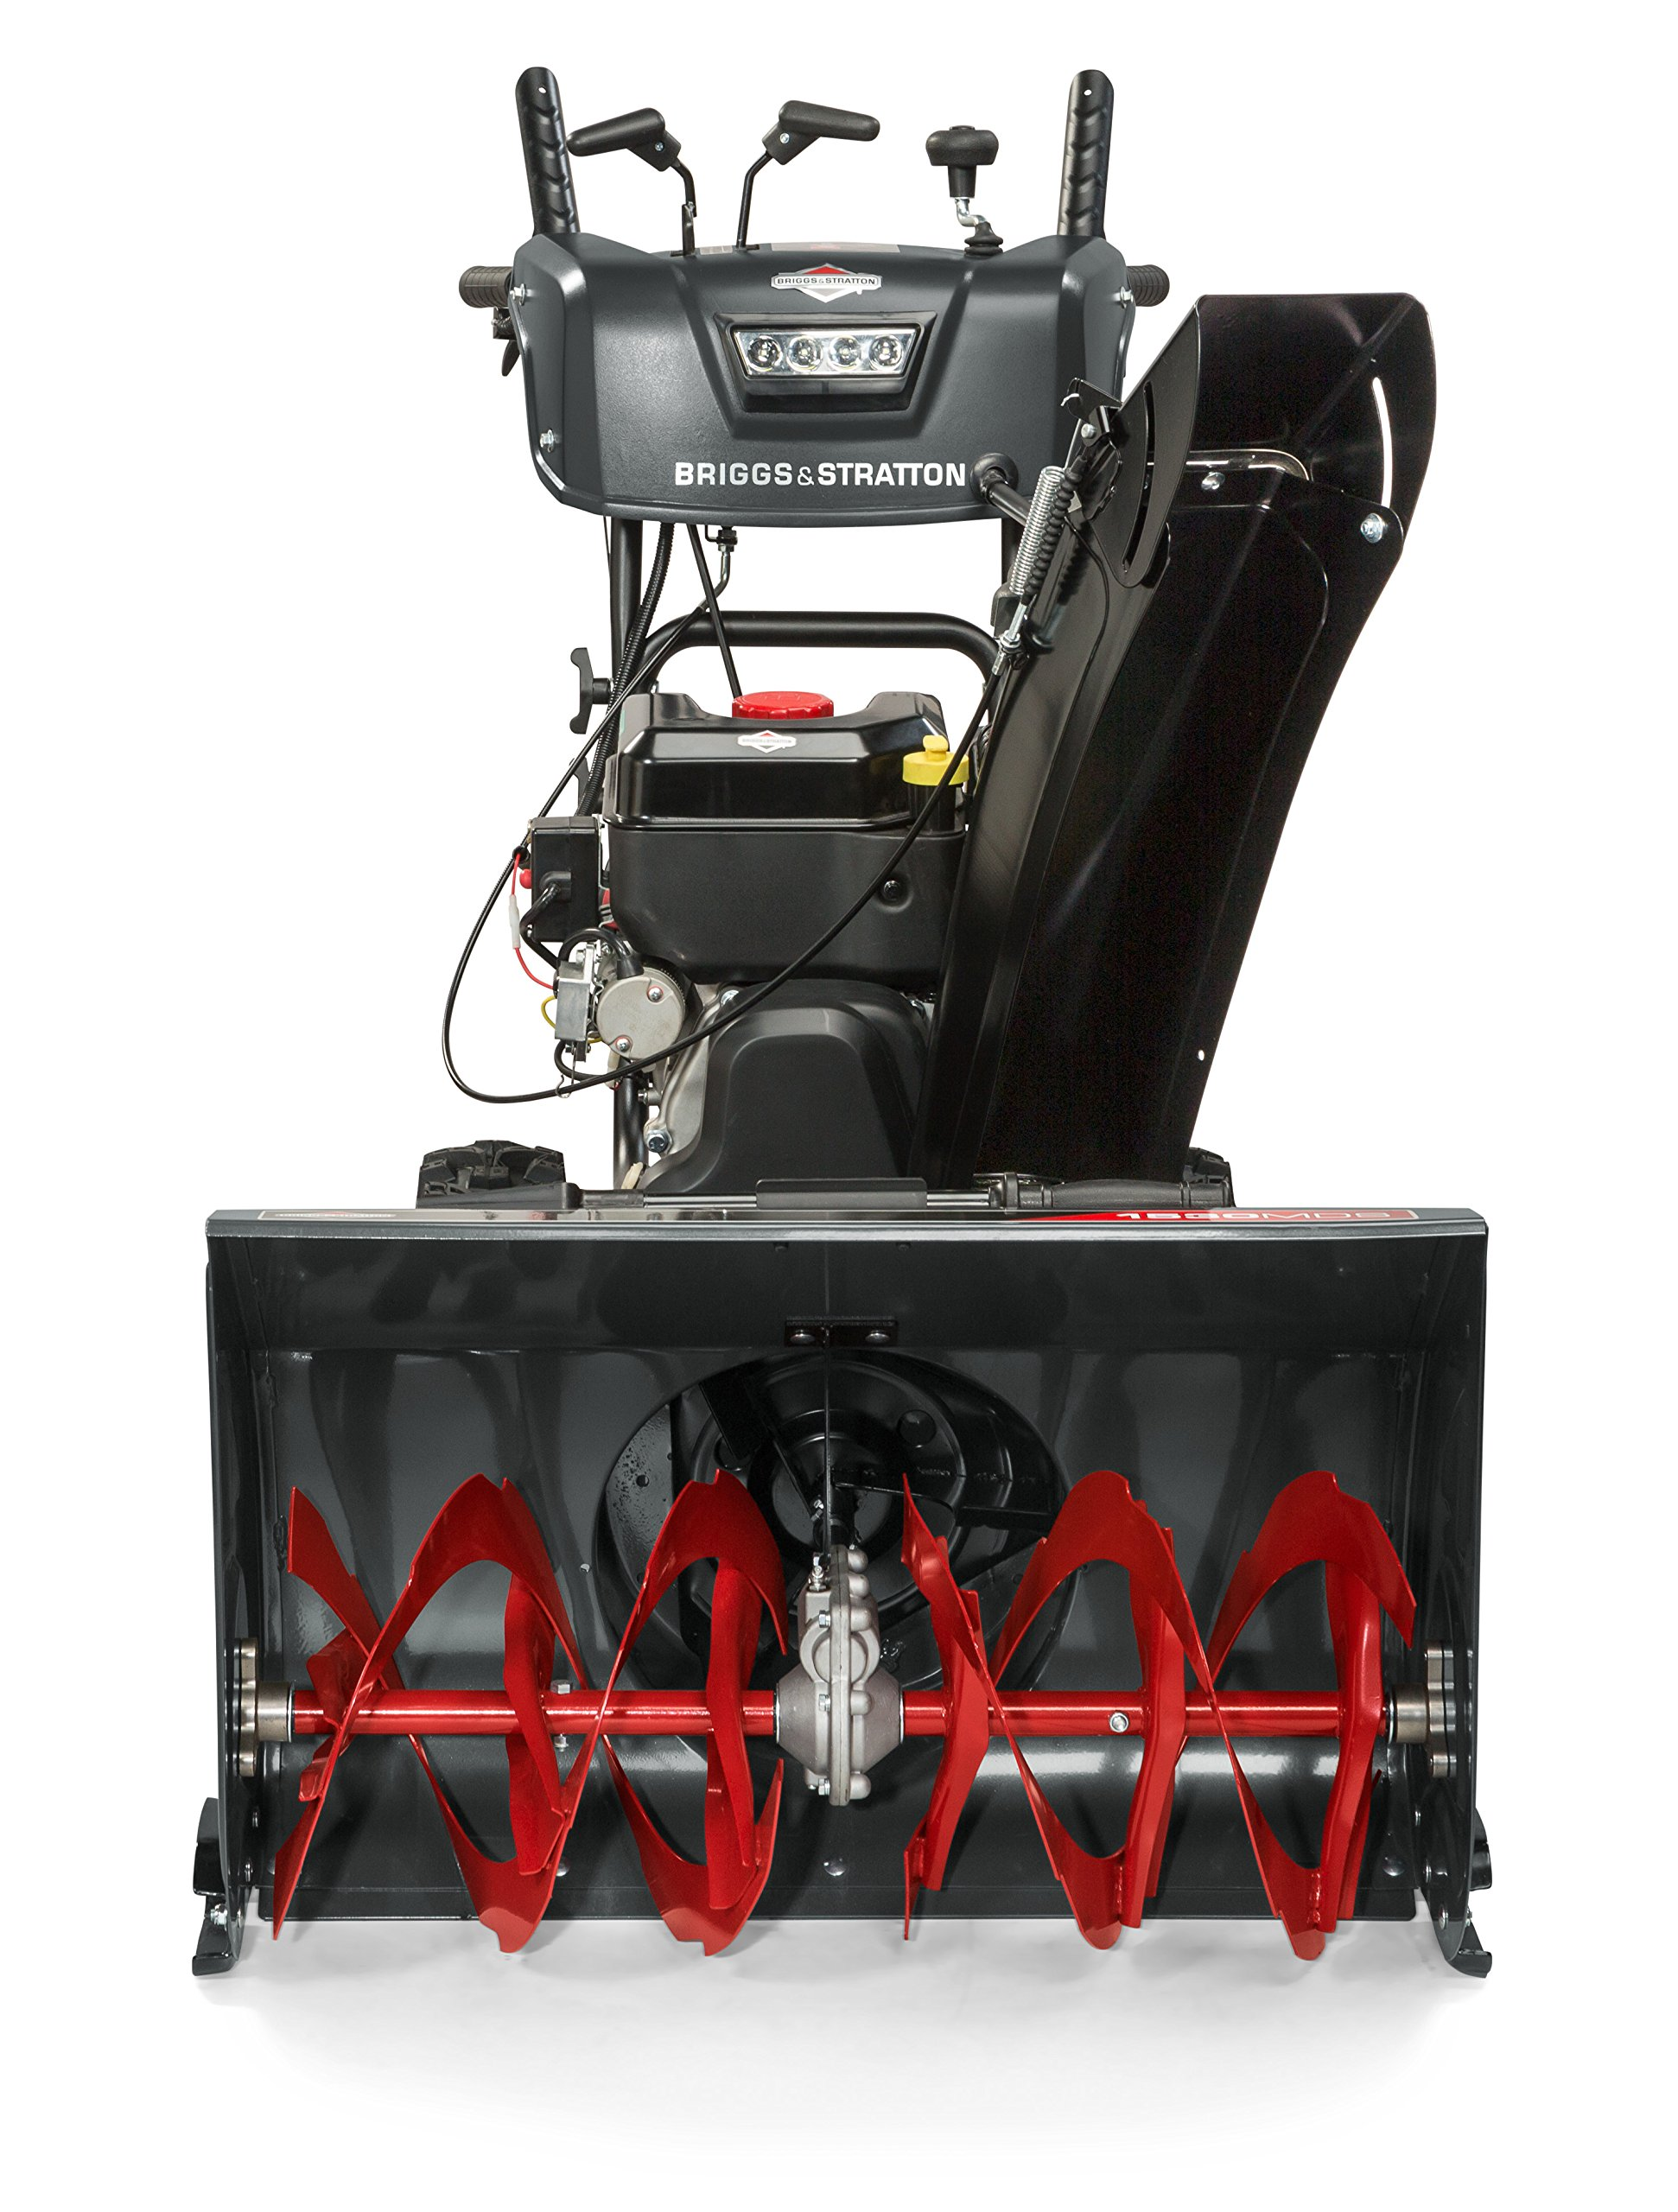 Briggs & Stratton 1530MDS Dual Stage Snowthrower Snow Thrower, 306cc by Briggs & Stratton (Image #3)